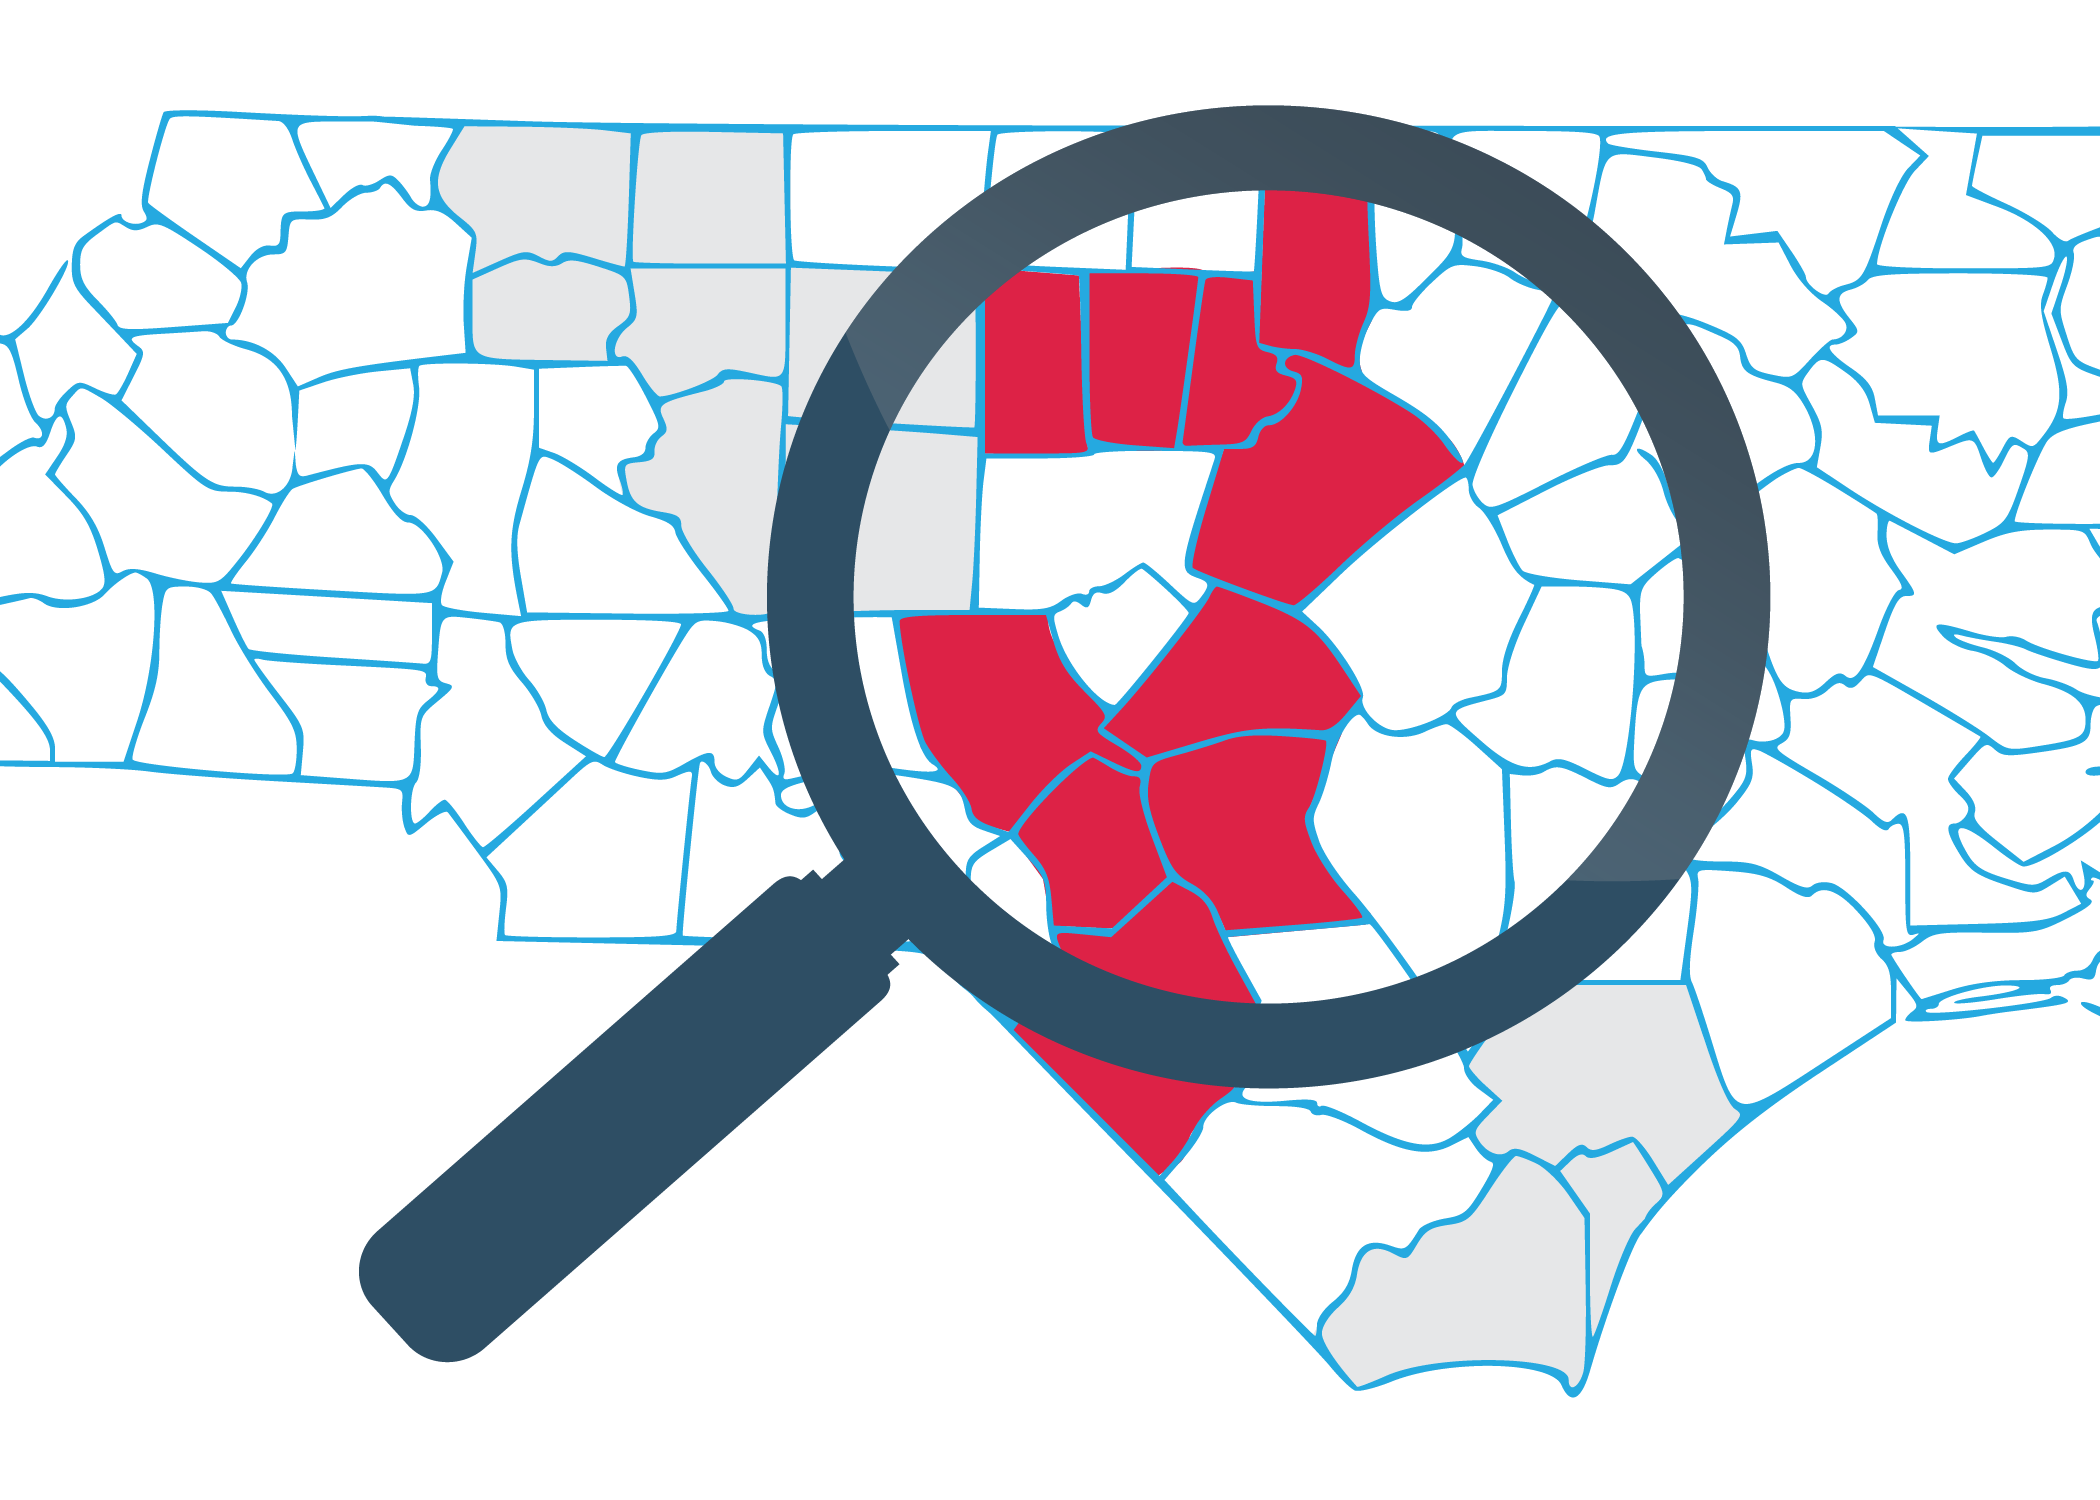 map-with-glass-02.png